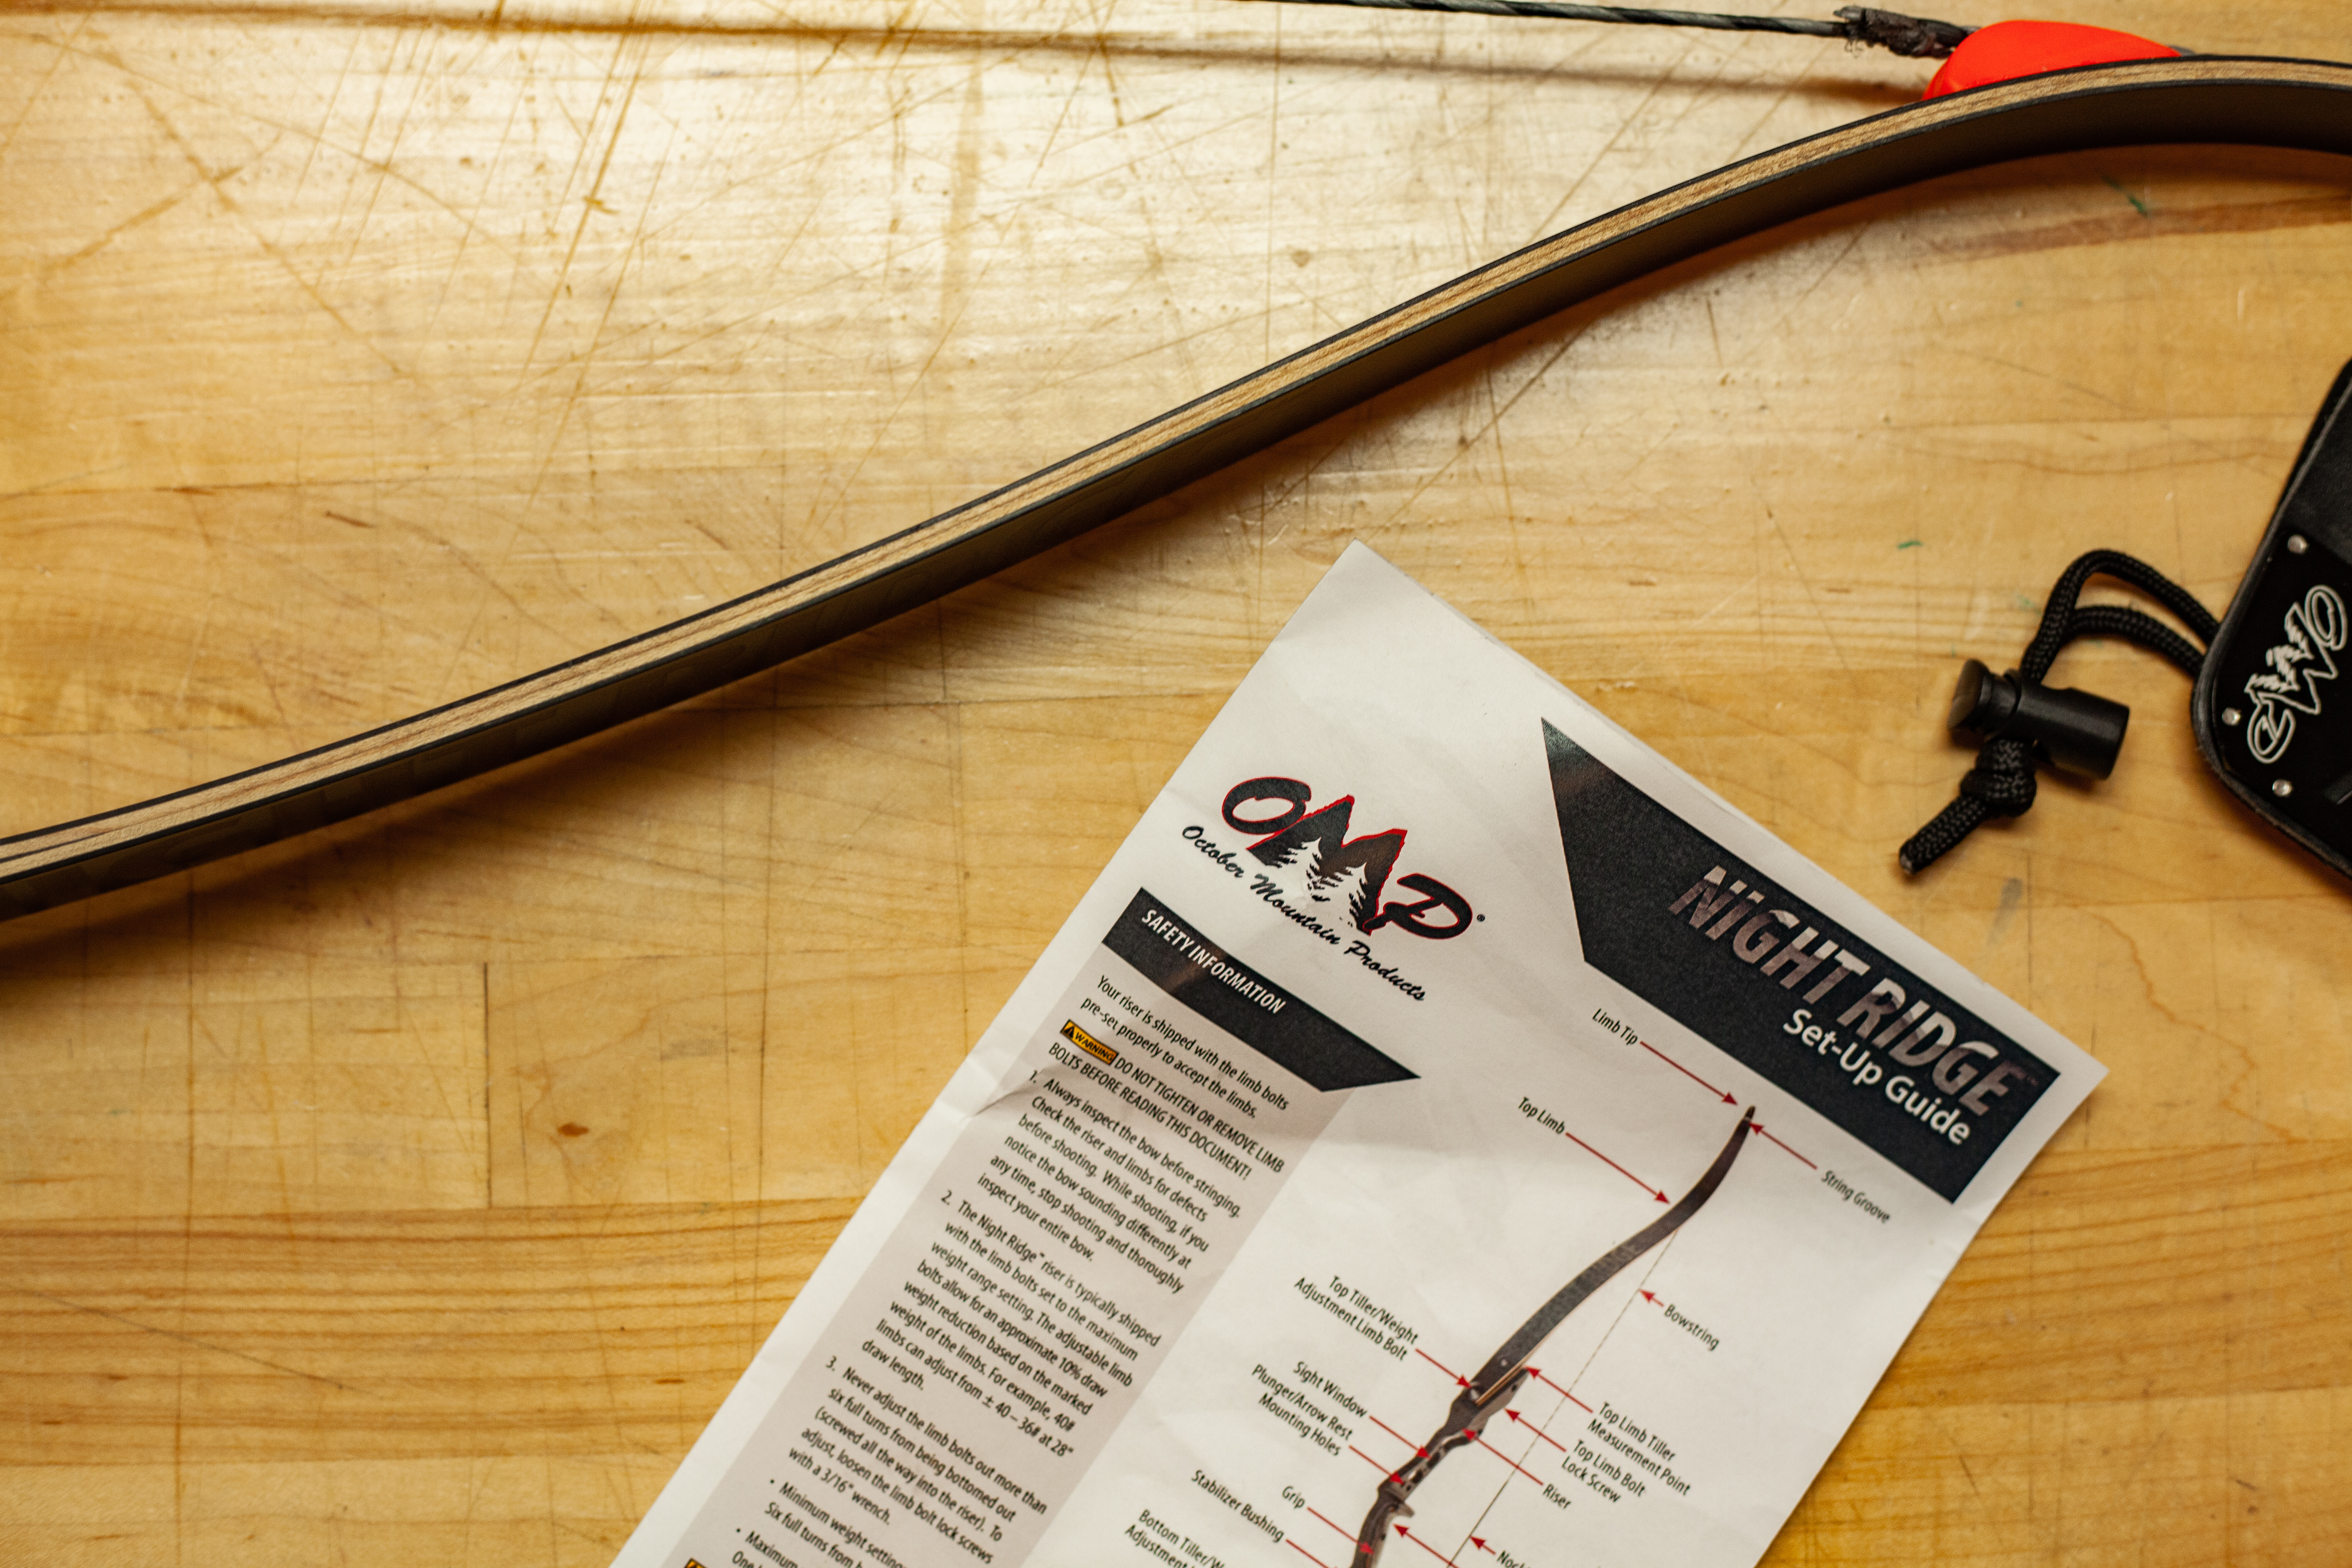 Traditional Archers Path | Choosing A Recurve Hunting Bow